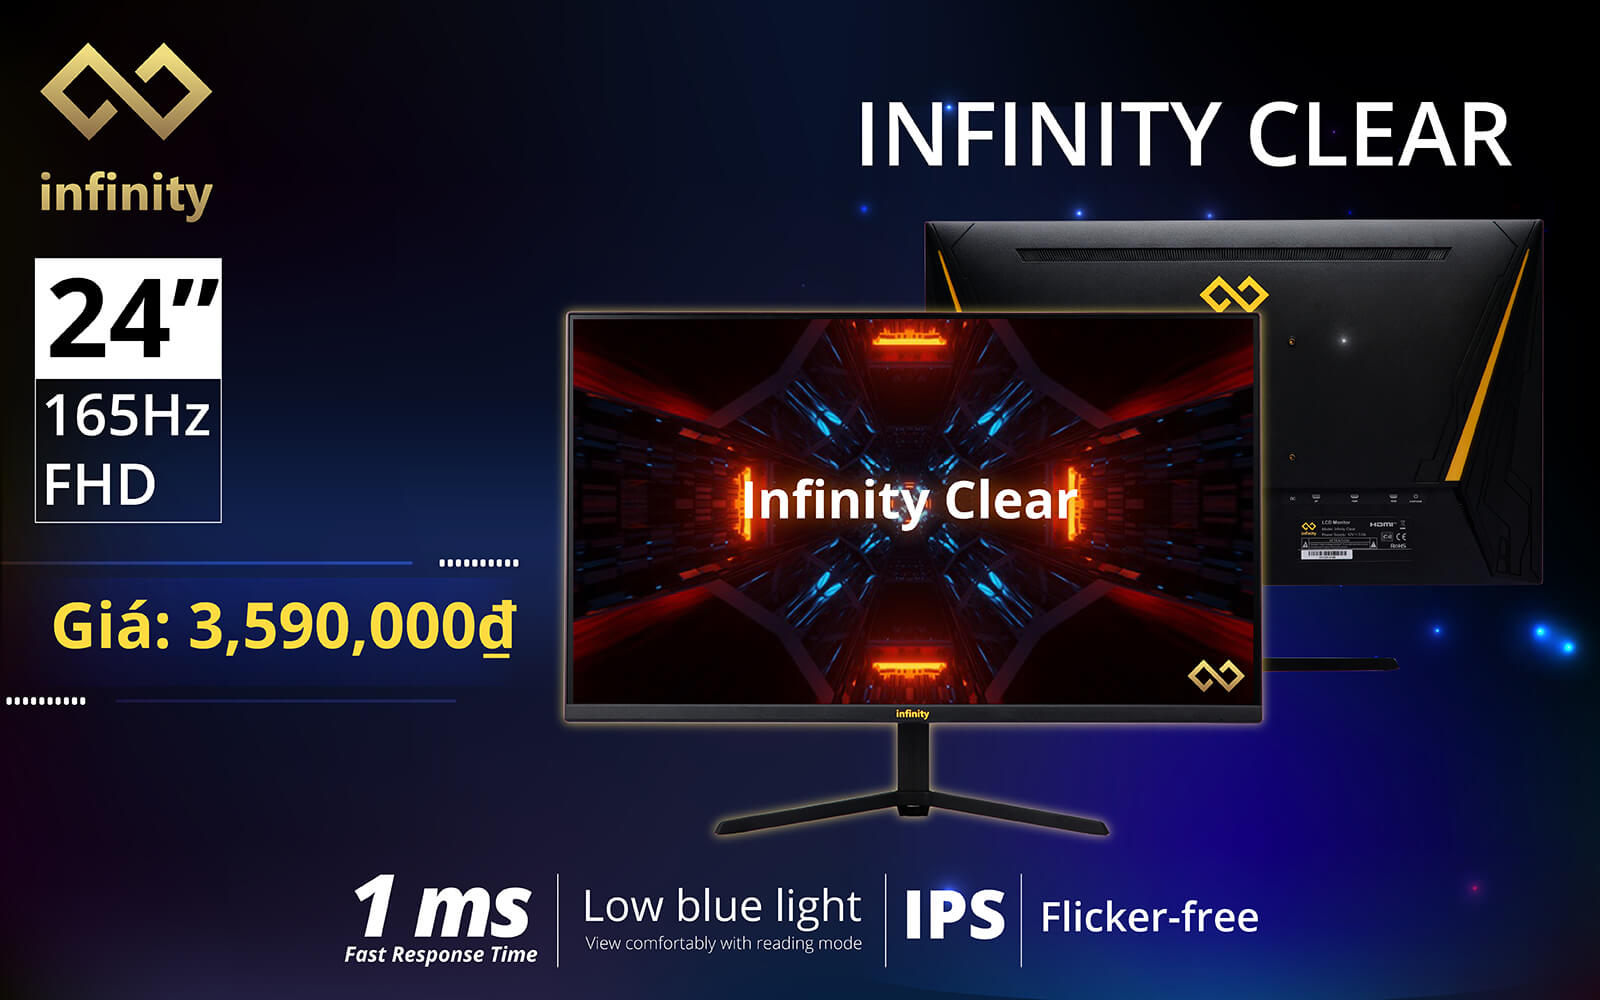 Infinity Clear Fhd Ips 165hz Features 1